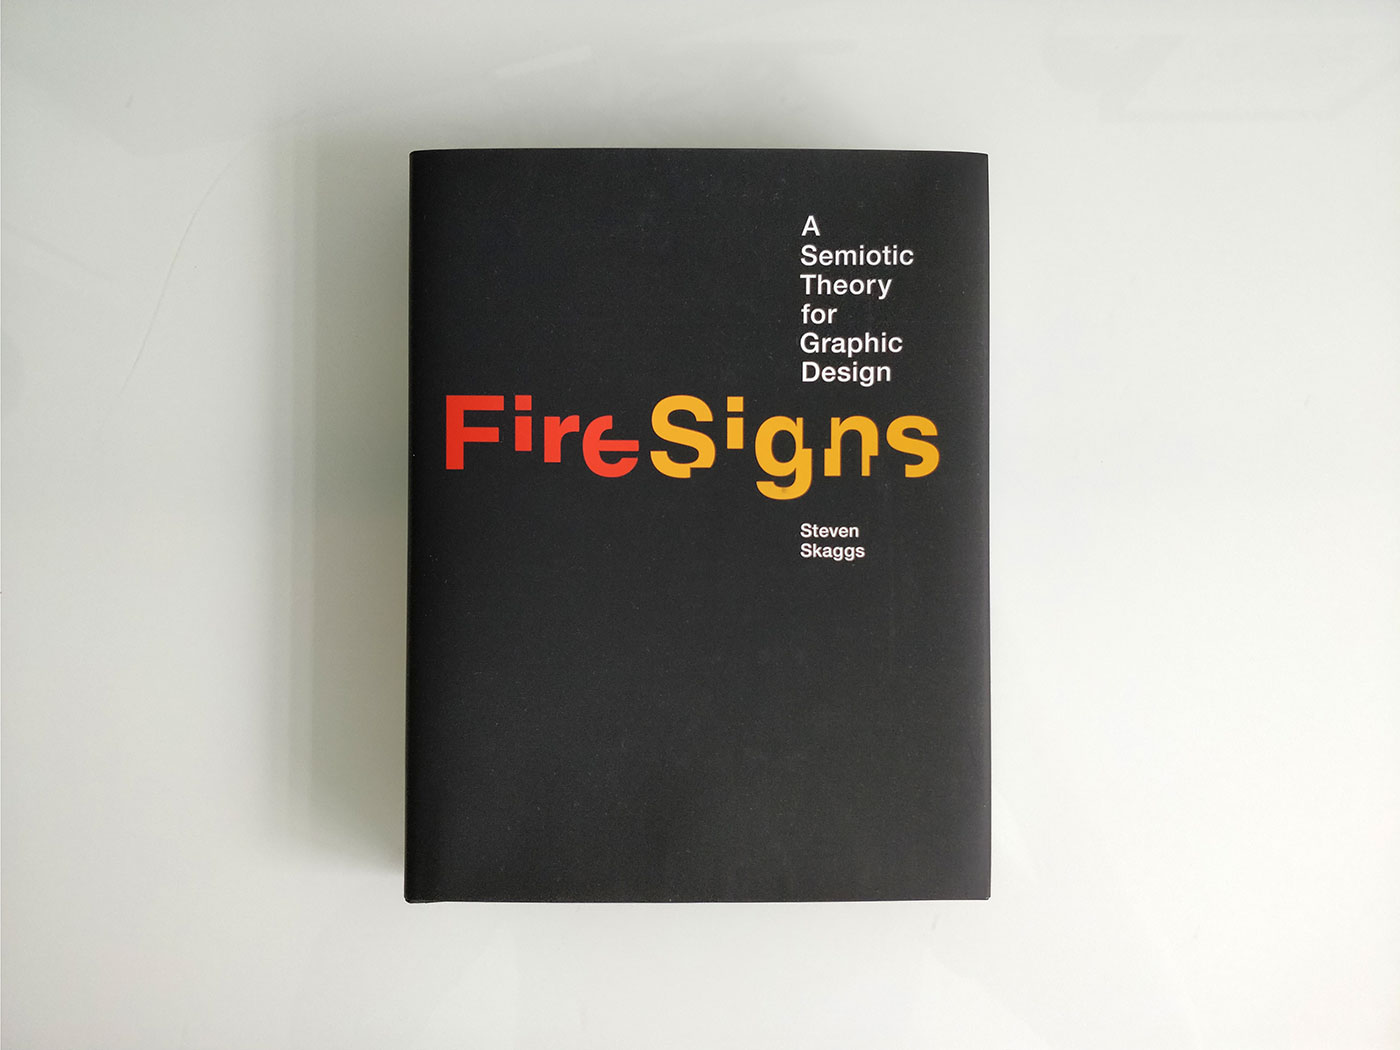 FireSigns: a semiotic theory for graphic design